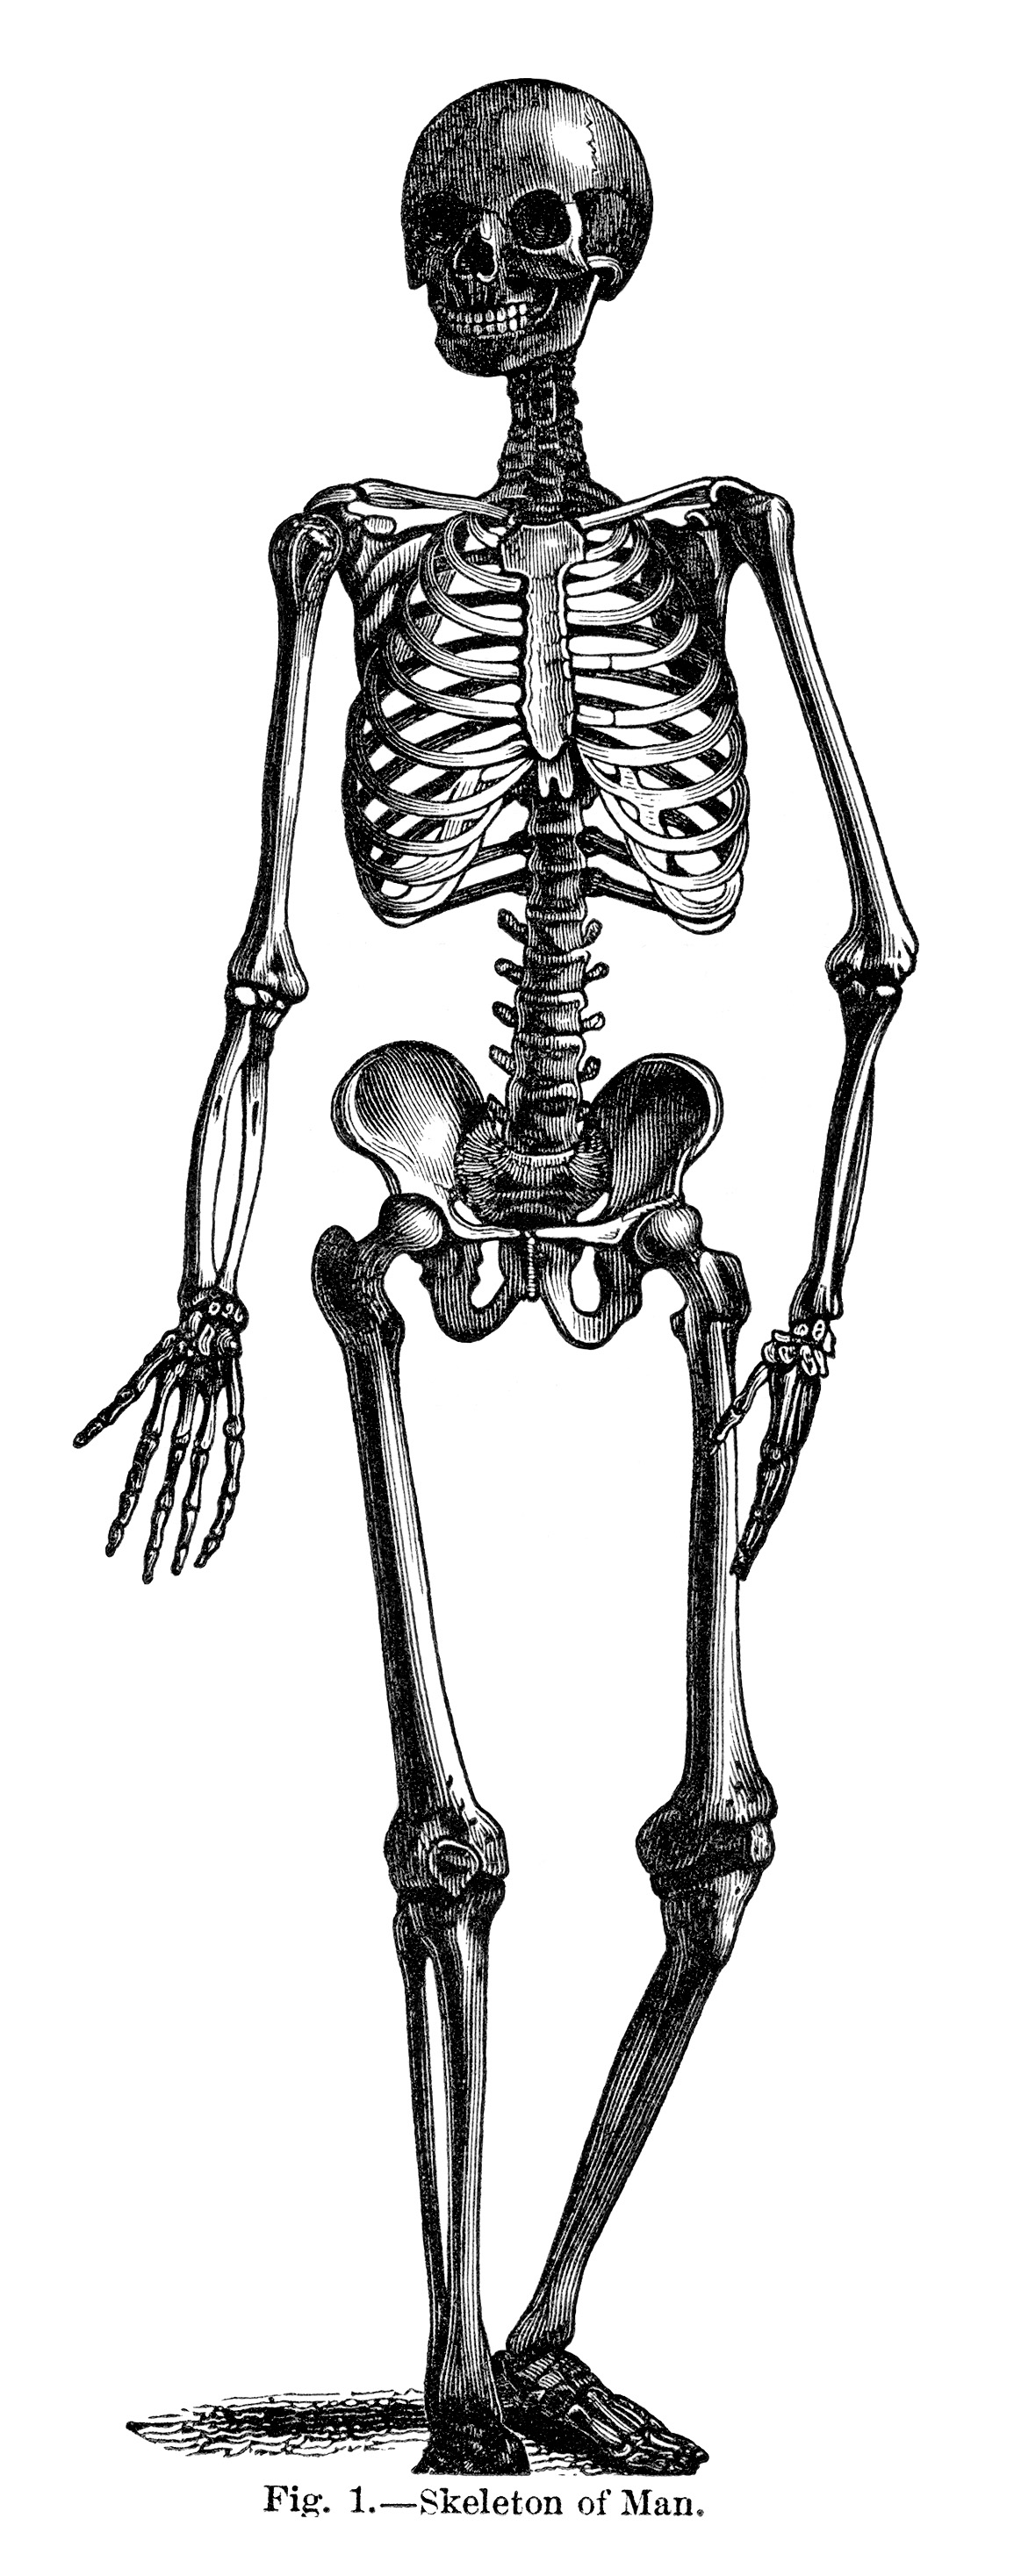 Skeleton of Man ~ Free Vintage Halloween Clip Art Illustration.